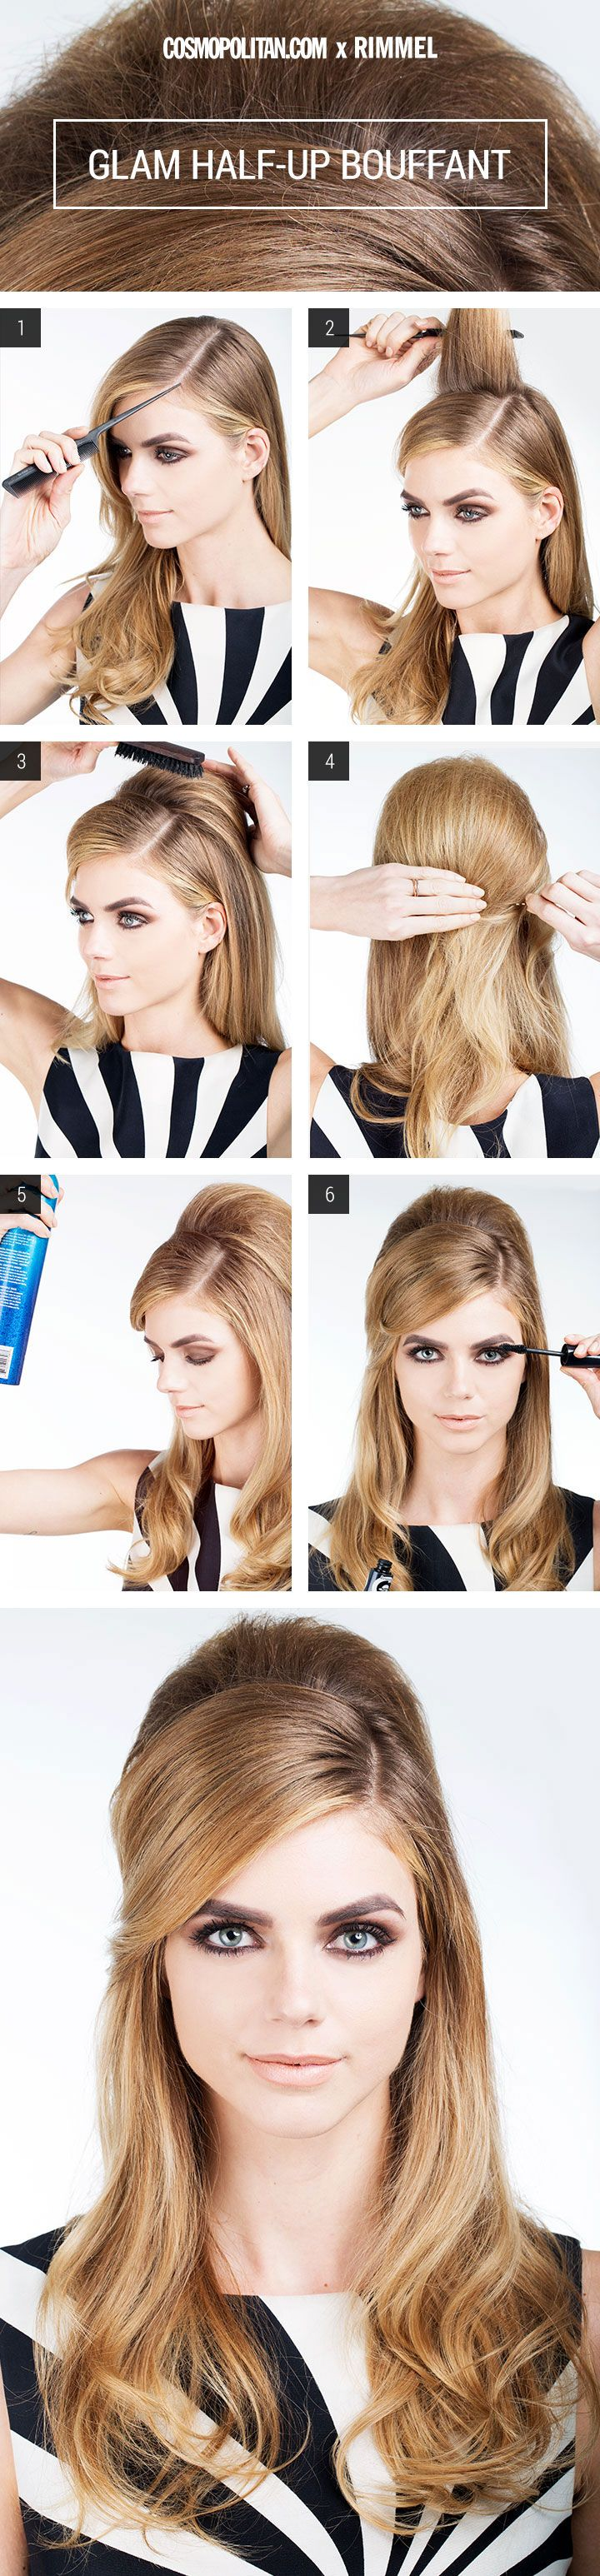 Hair How To Glam Half Up Bouffant Hairstylists Half Updo And